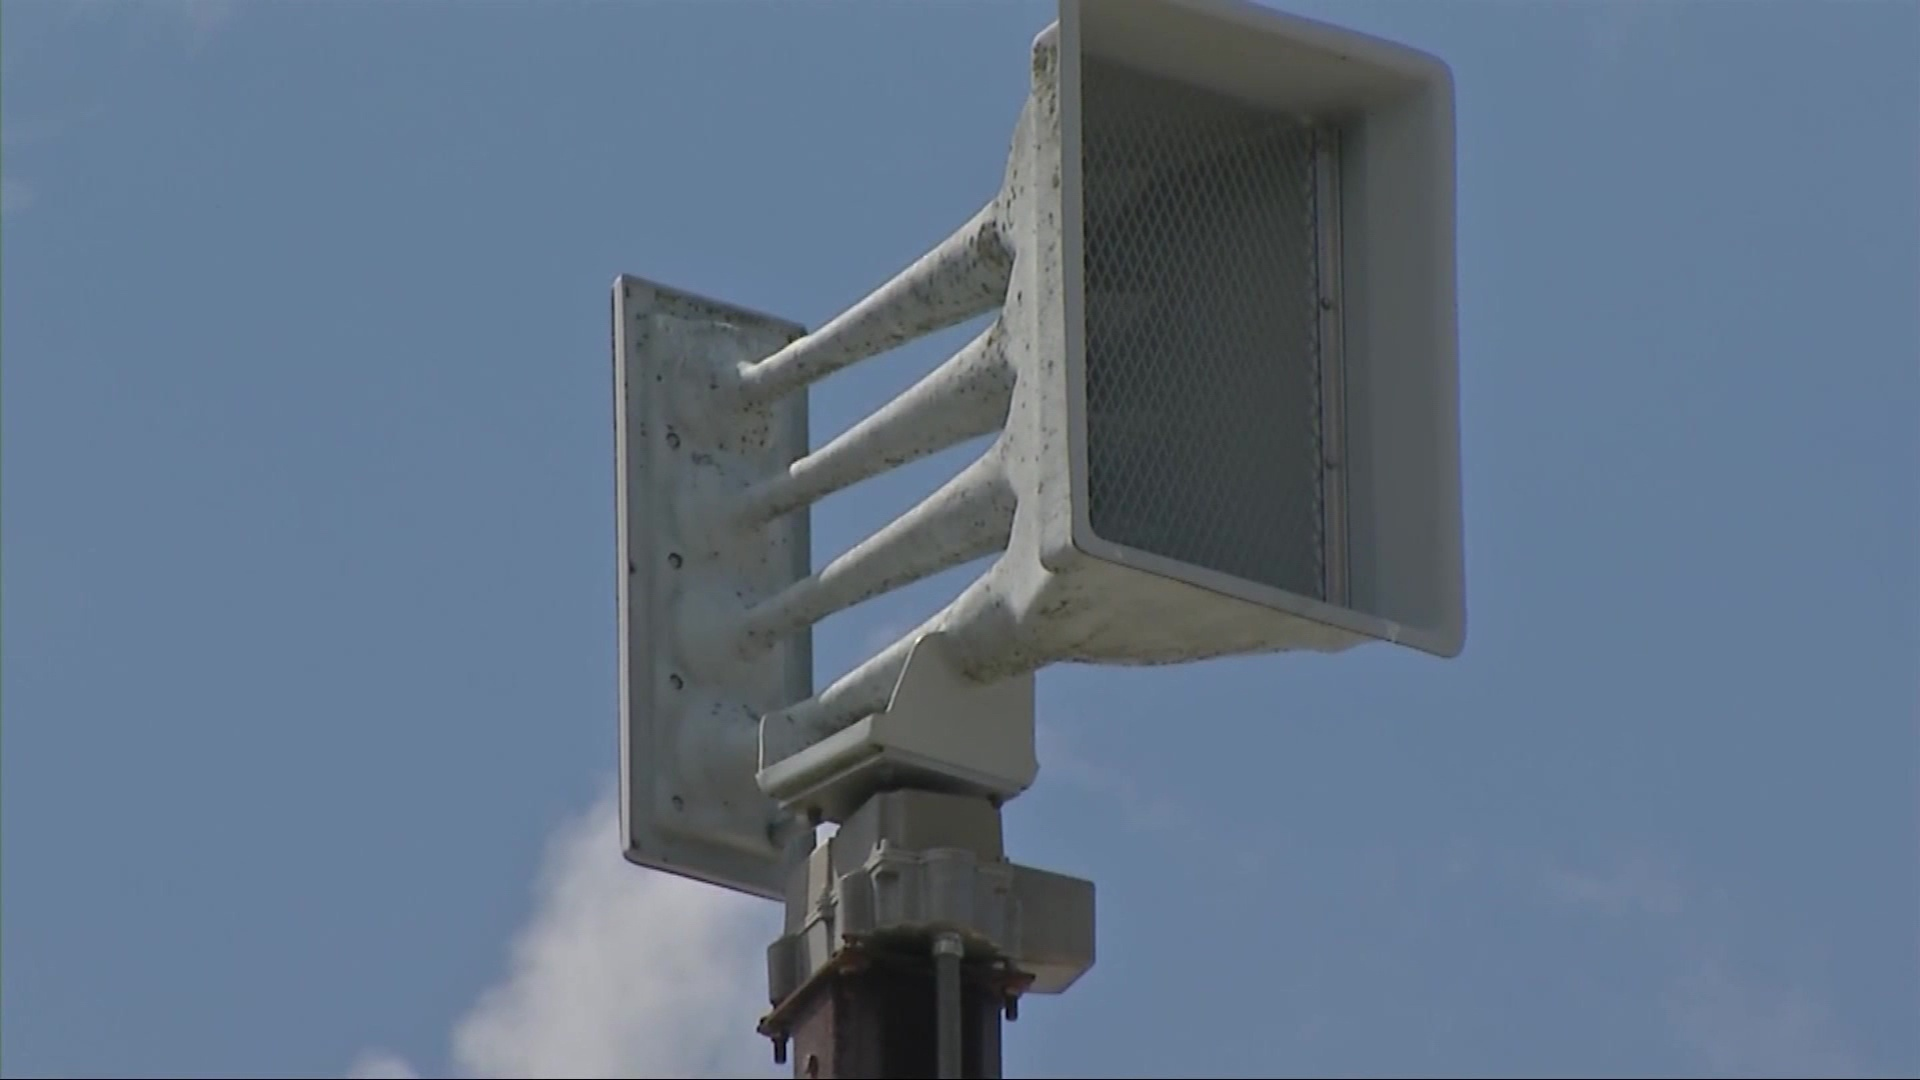 Johnstown residents say tornado sirens were slow to activate Monday